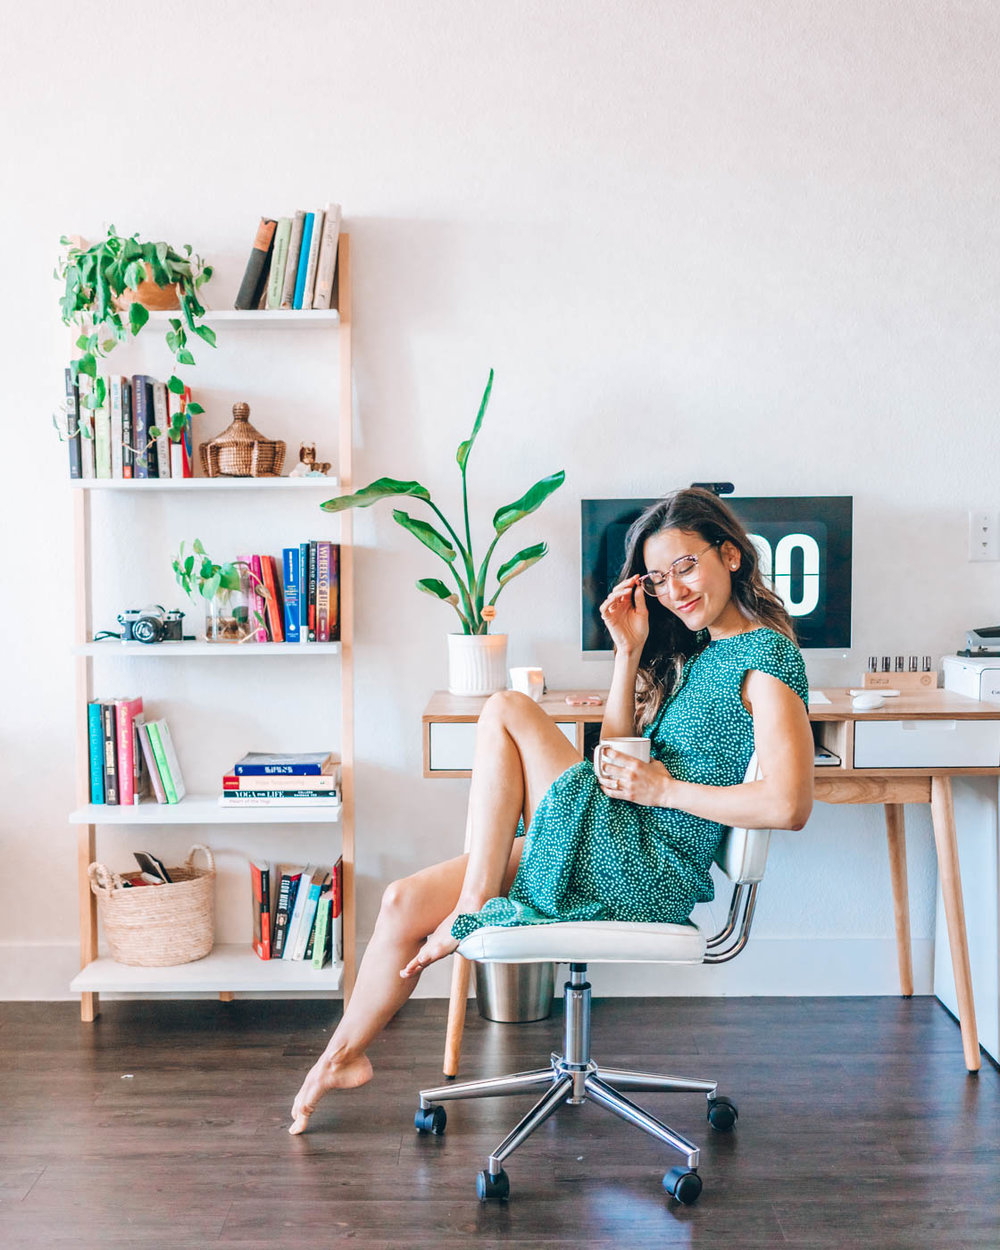 How I maximize my time as a creative entrepreneur | Want a peek into how I run my day as an entrepreneur? In this post, I'll show you how I structure my time to do #allthethings required to run a successful online business and still have time for a life. You'll get my favorite time management tips + productivity hacks, plus a free calendar download so you can put these strategies into action! | Om & the City Blog #OmAndTheCity #timemanagement #productivity #creative entrepreneur #organization